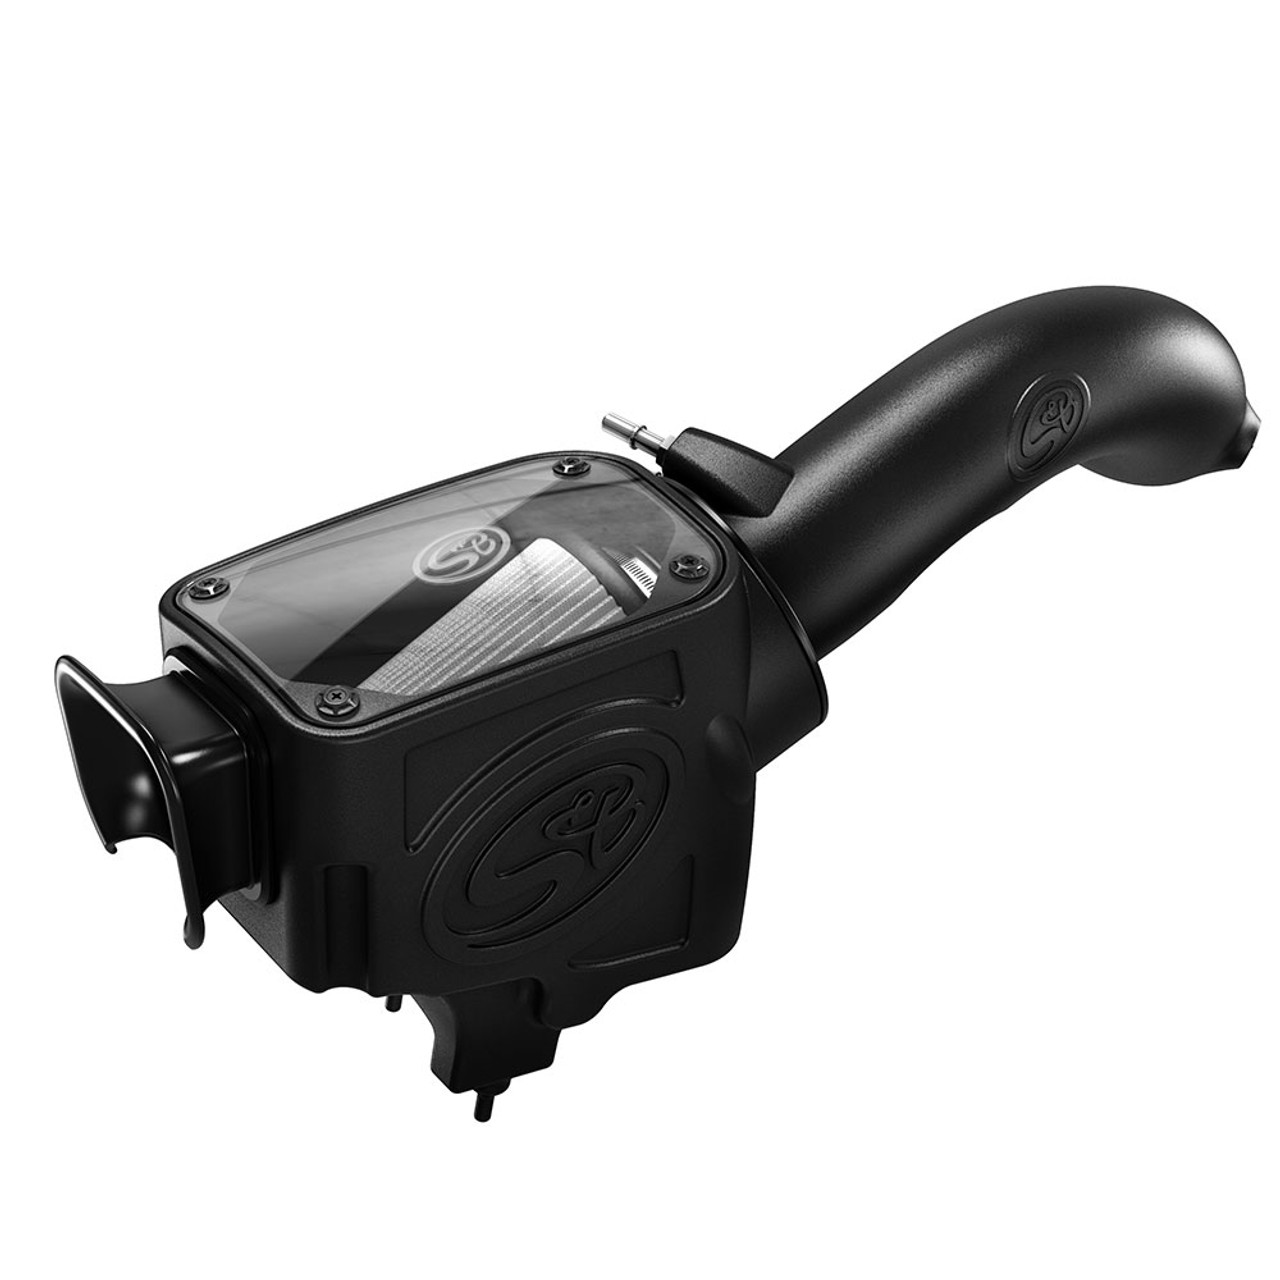 S&B 75-5129D Cold Air Intake for 2019 Jeep Wrangler JL 2.0L Turbo (Dry)